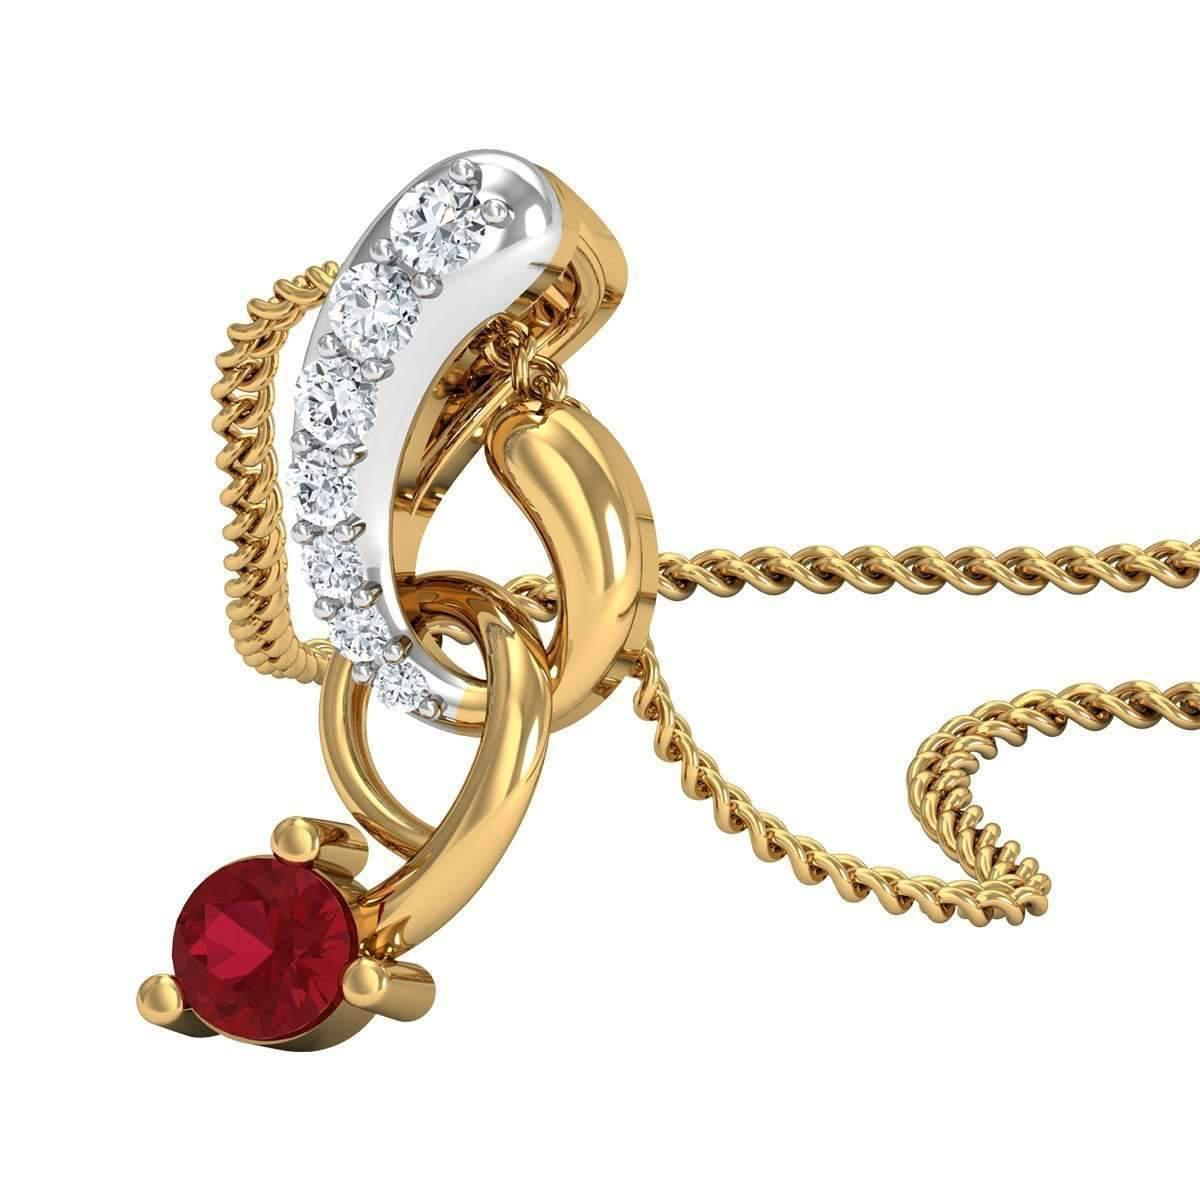 Diamoire Jewels Nature Inspired Pave Pendant in 18kt Yellow Gold, Diamonds and Red Intense Ruby